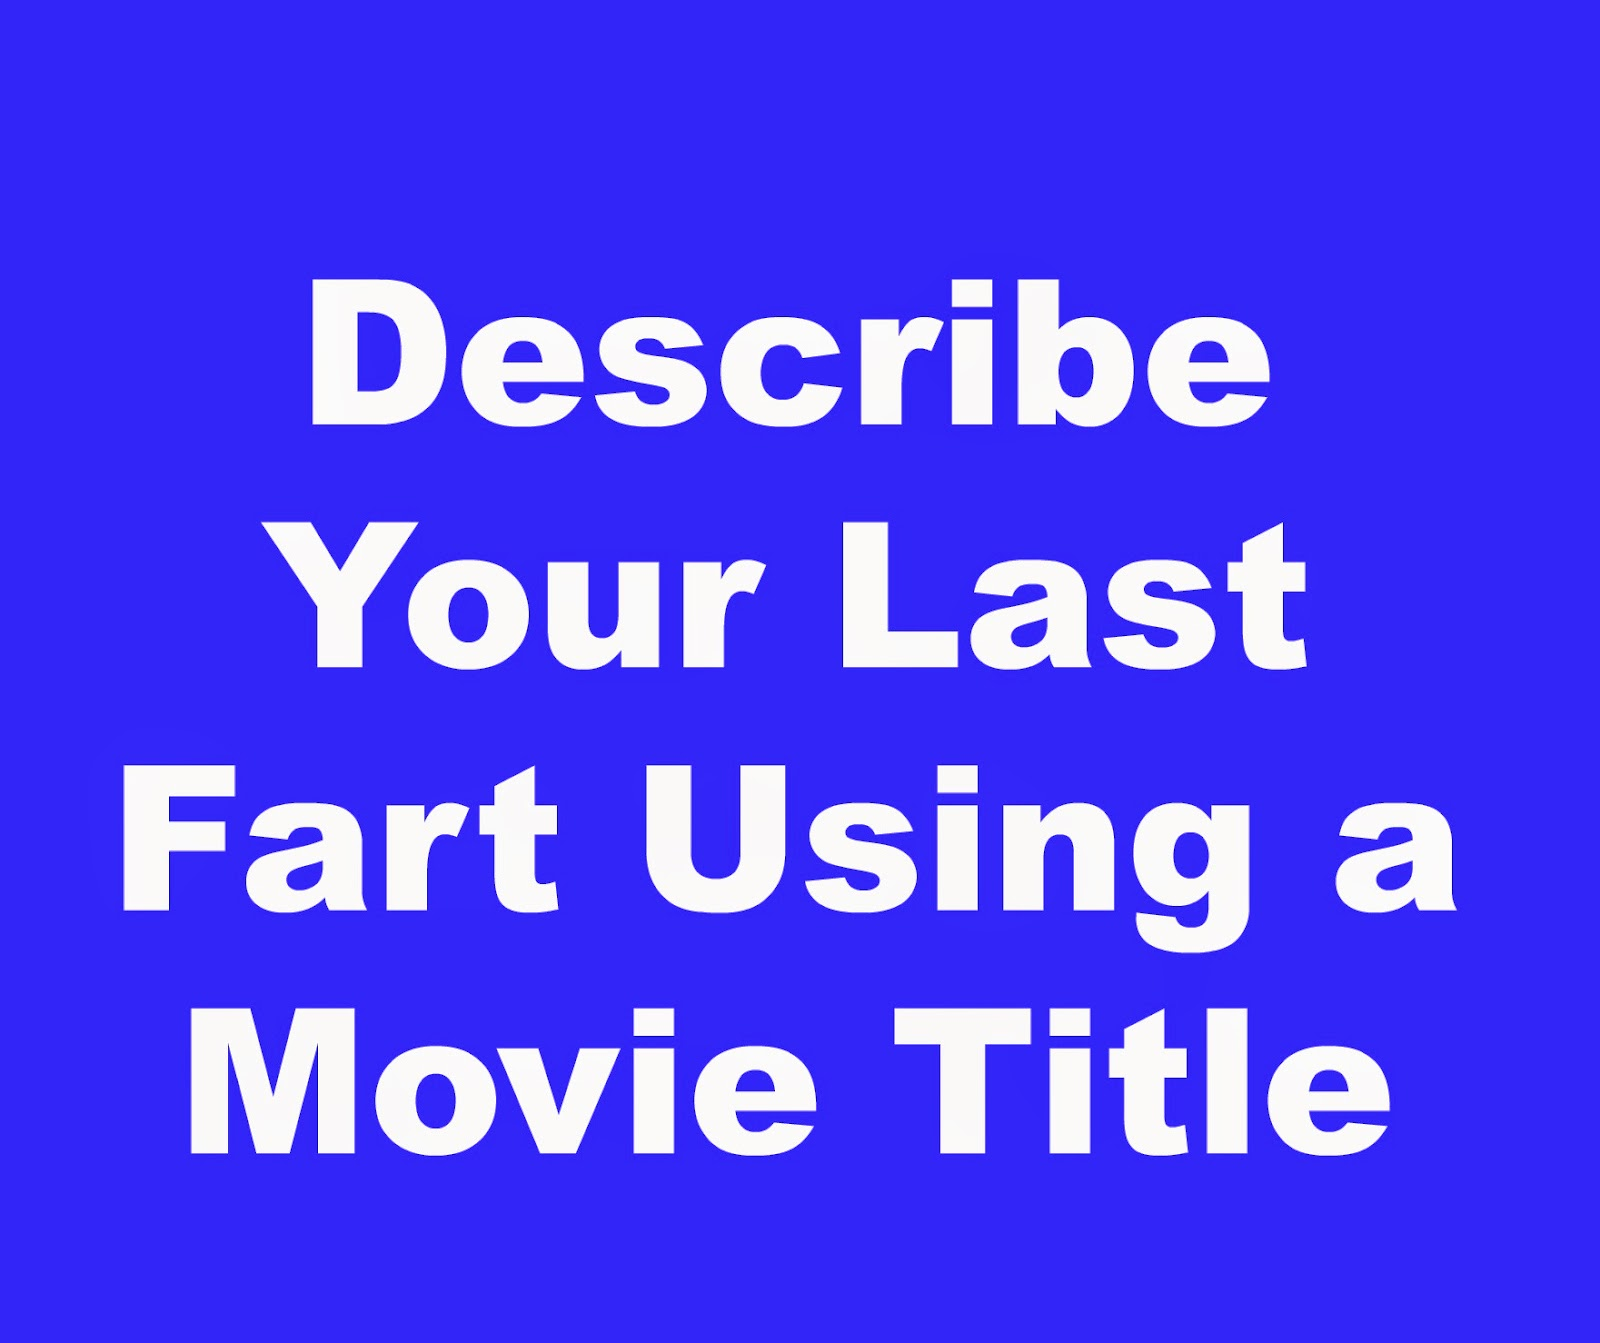 ian hall author top 10 dumbest things on facebook this month describe your last fart using a movie title